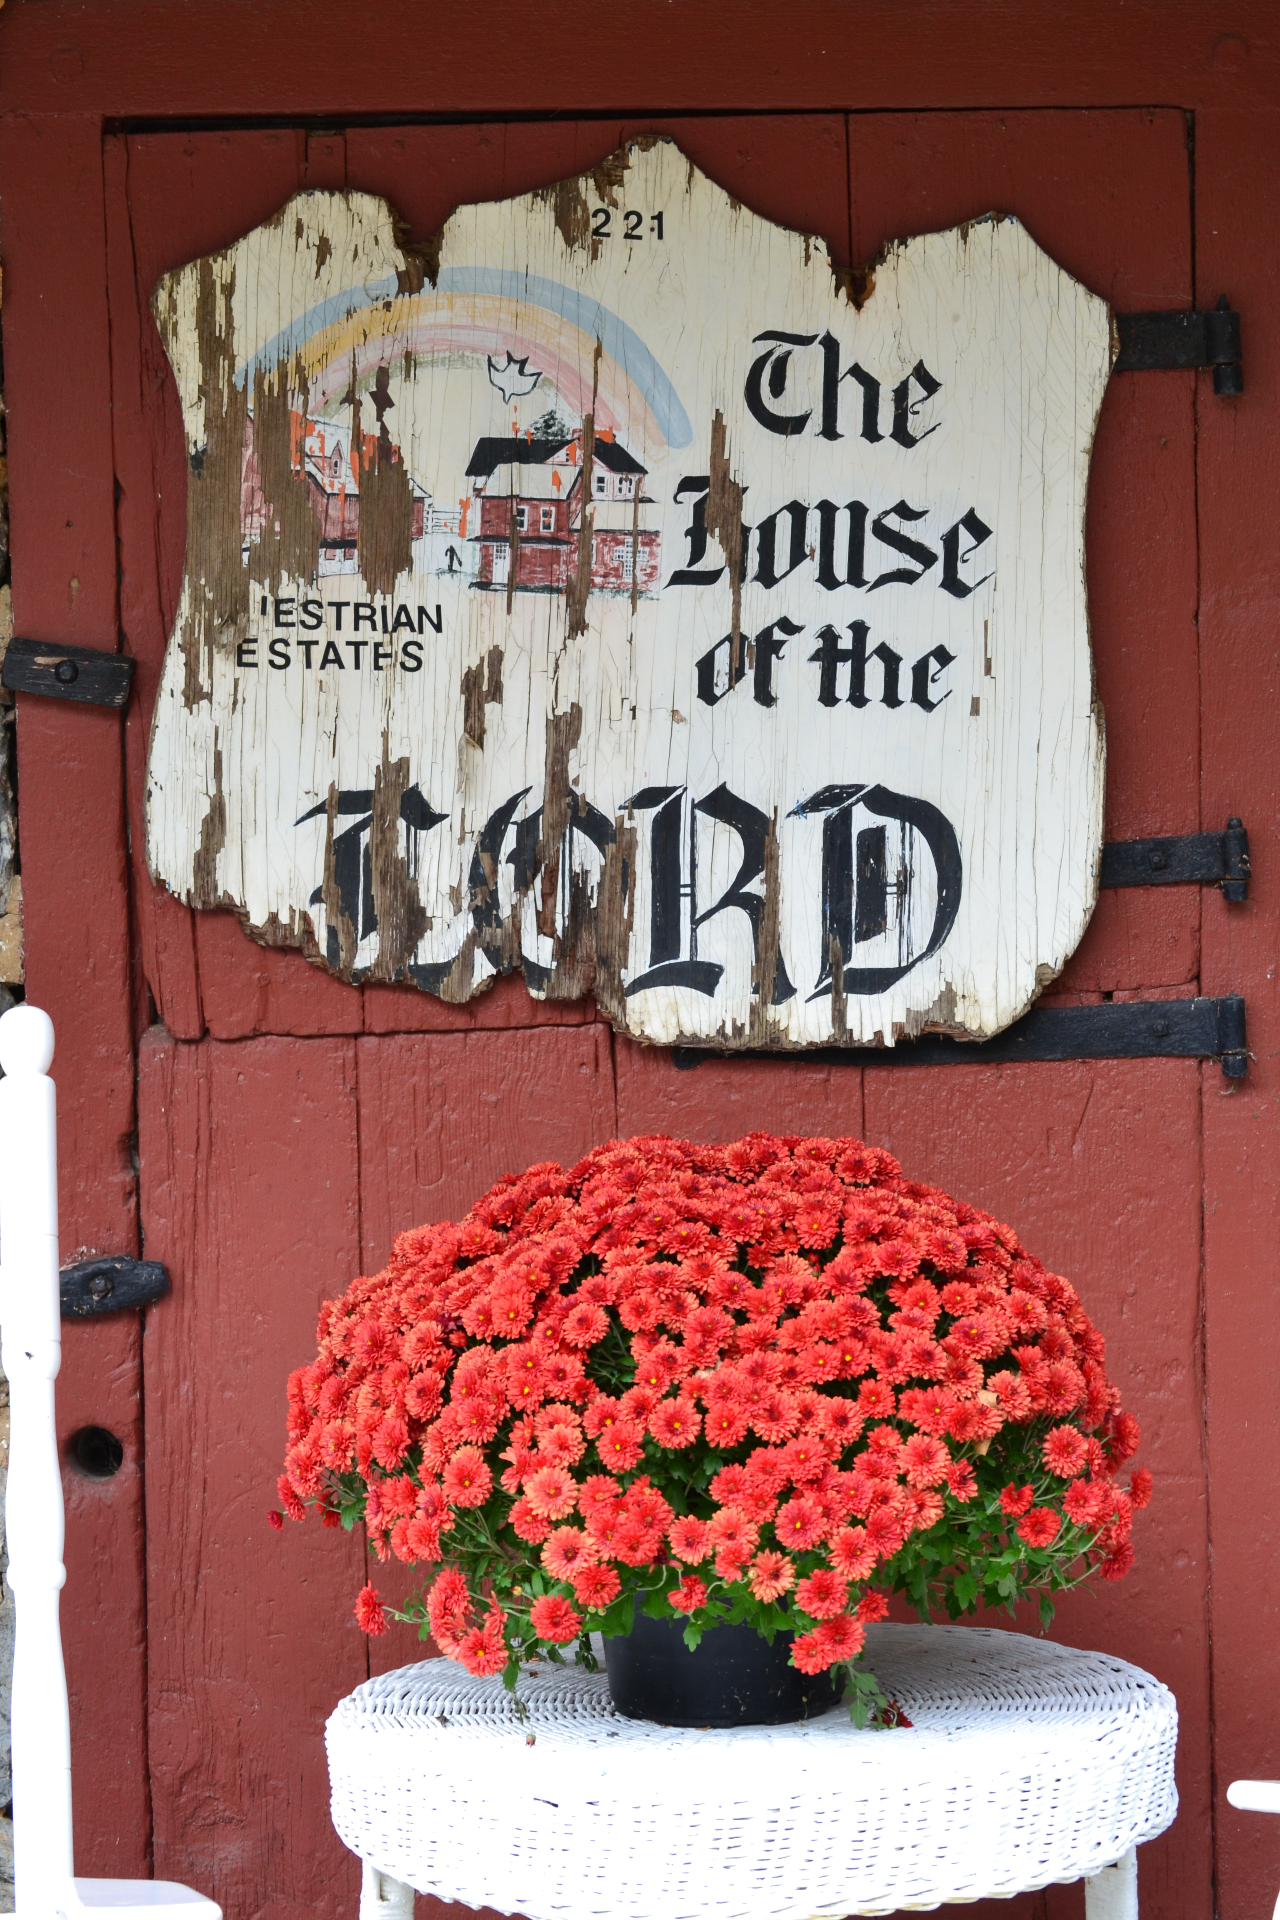 House of the Lord, Lancaster PA